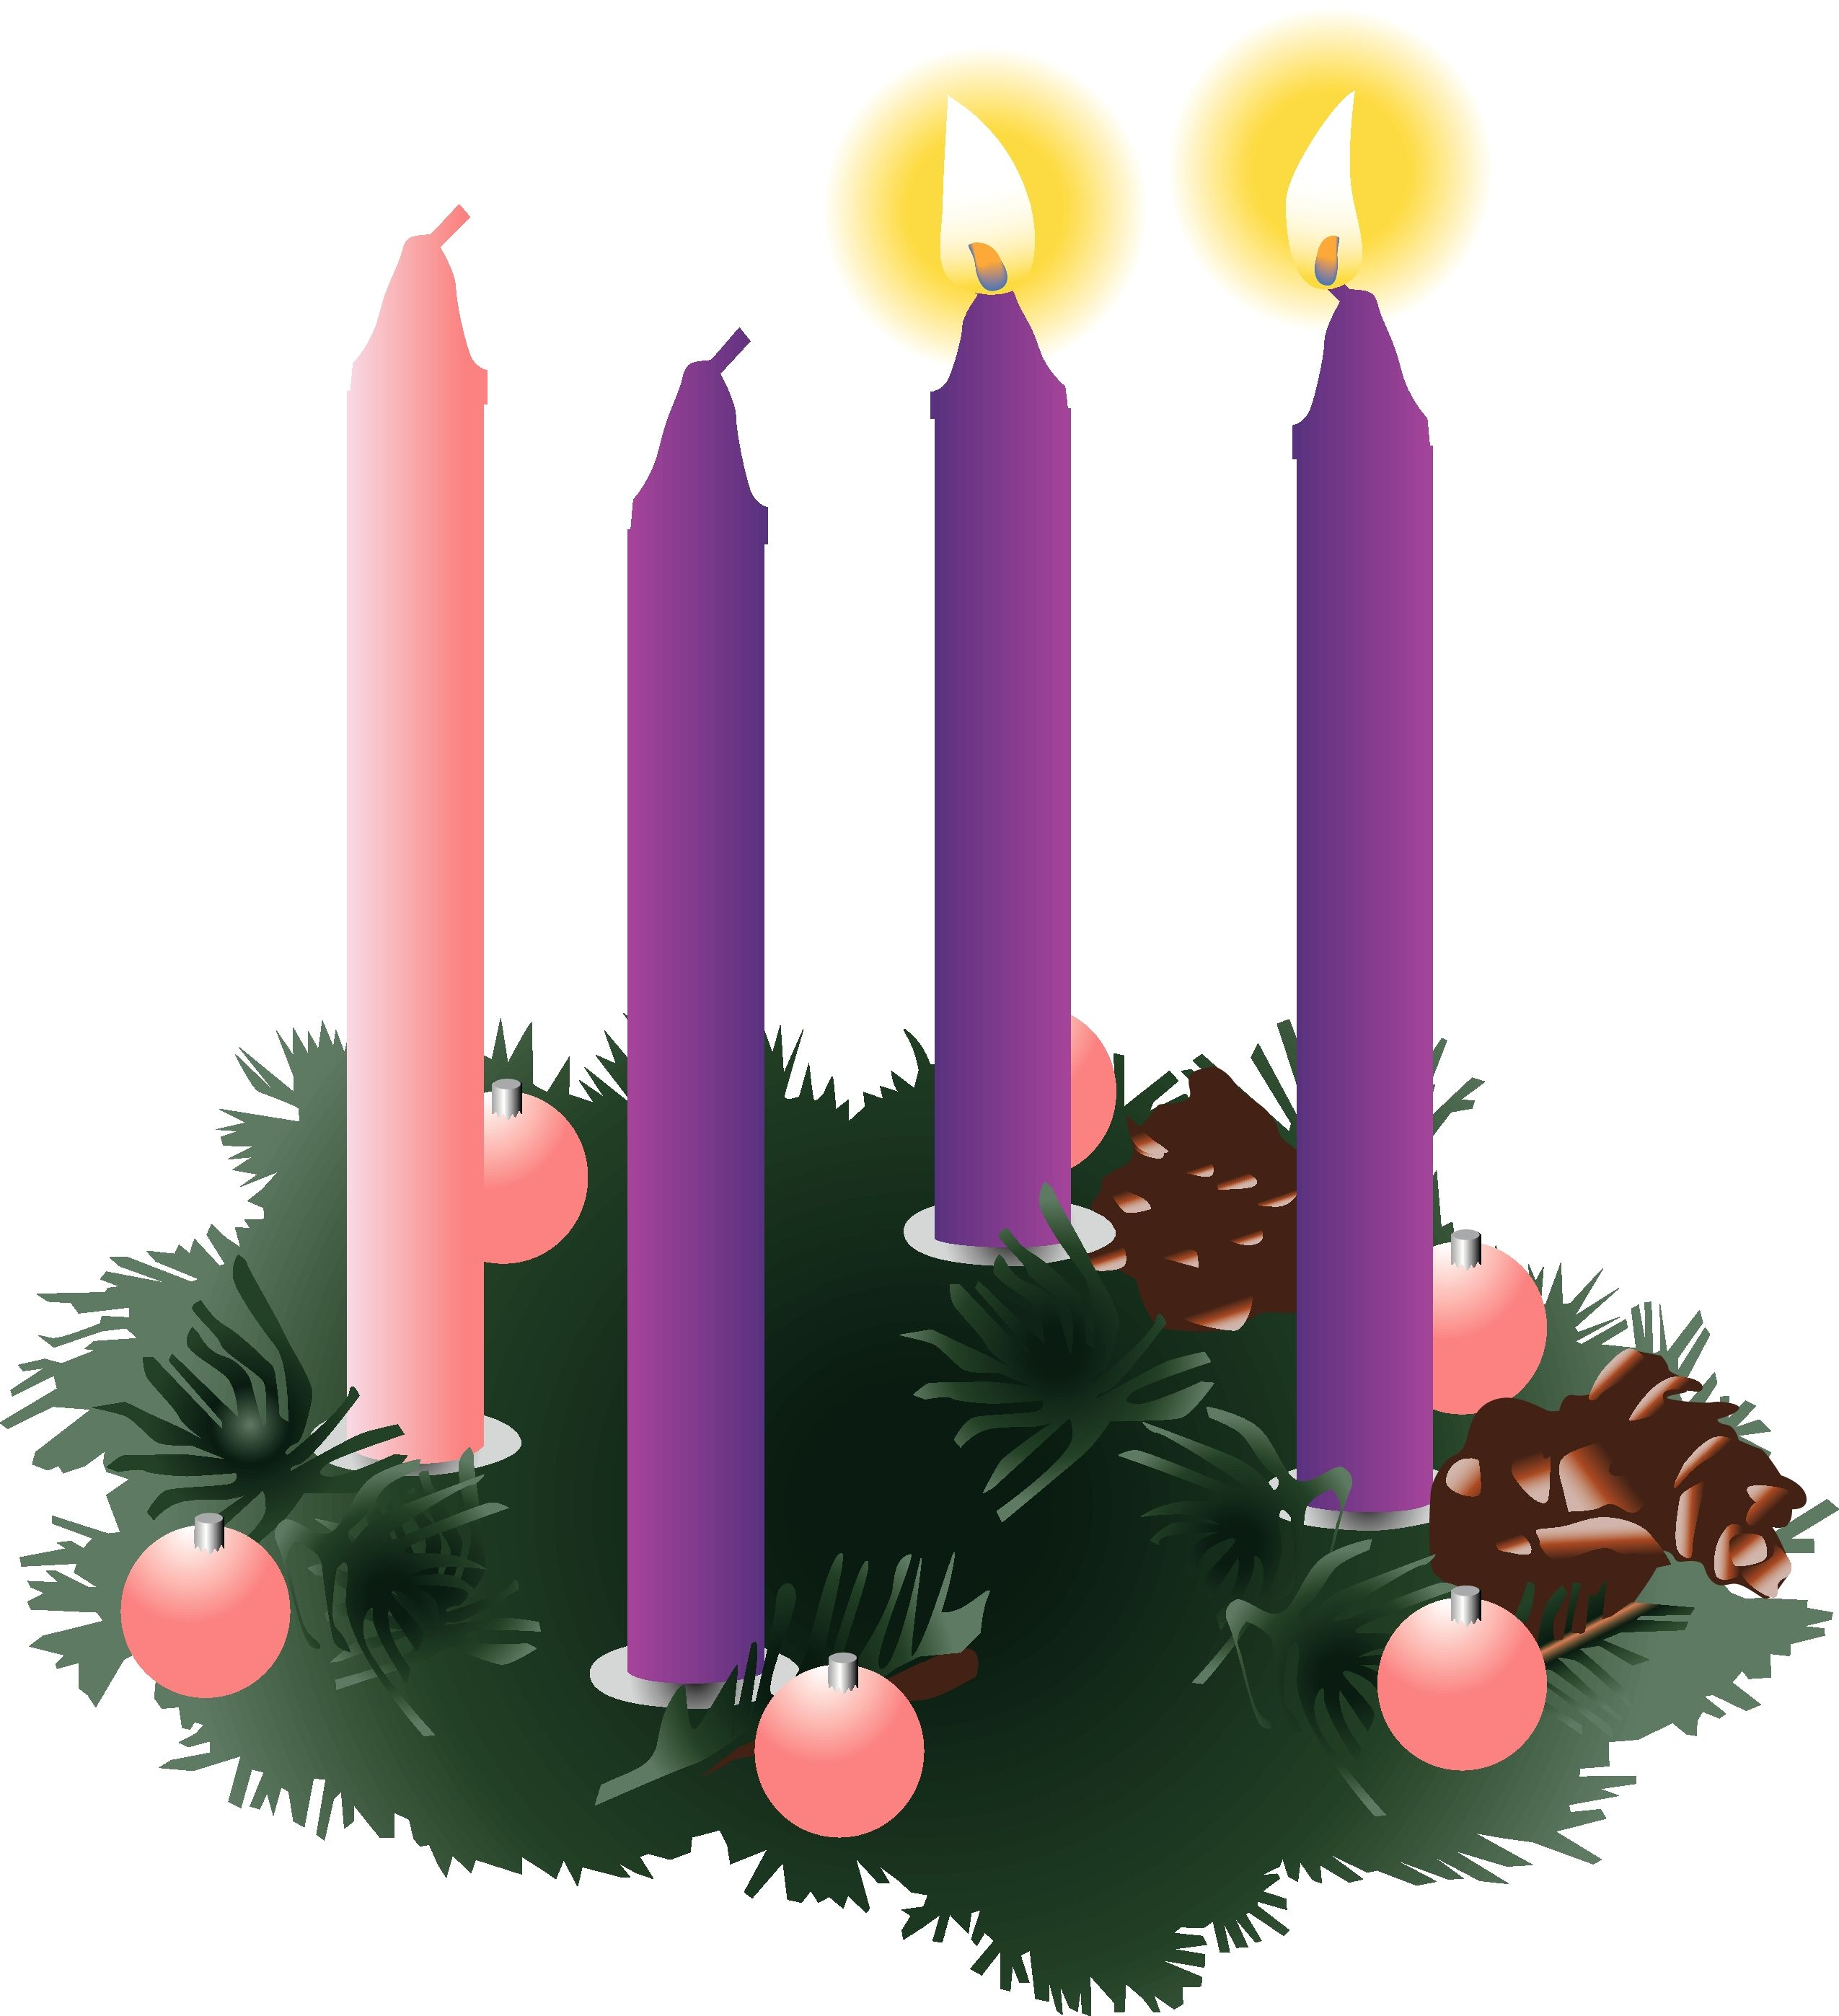 Advent wreath clipart candles vector royalty free download Pics For > Second Sunday Of Advent Hope | Religious Clipart | Advent ... vector royalty free download